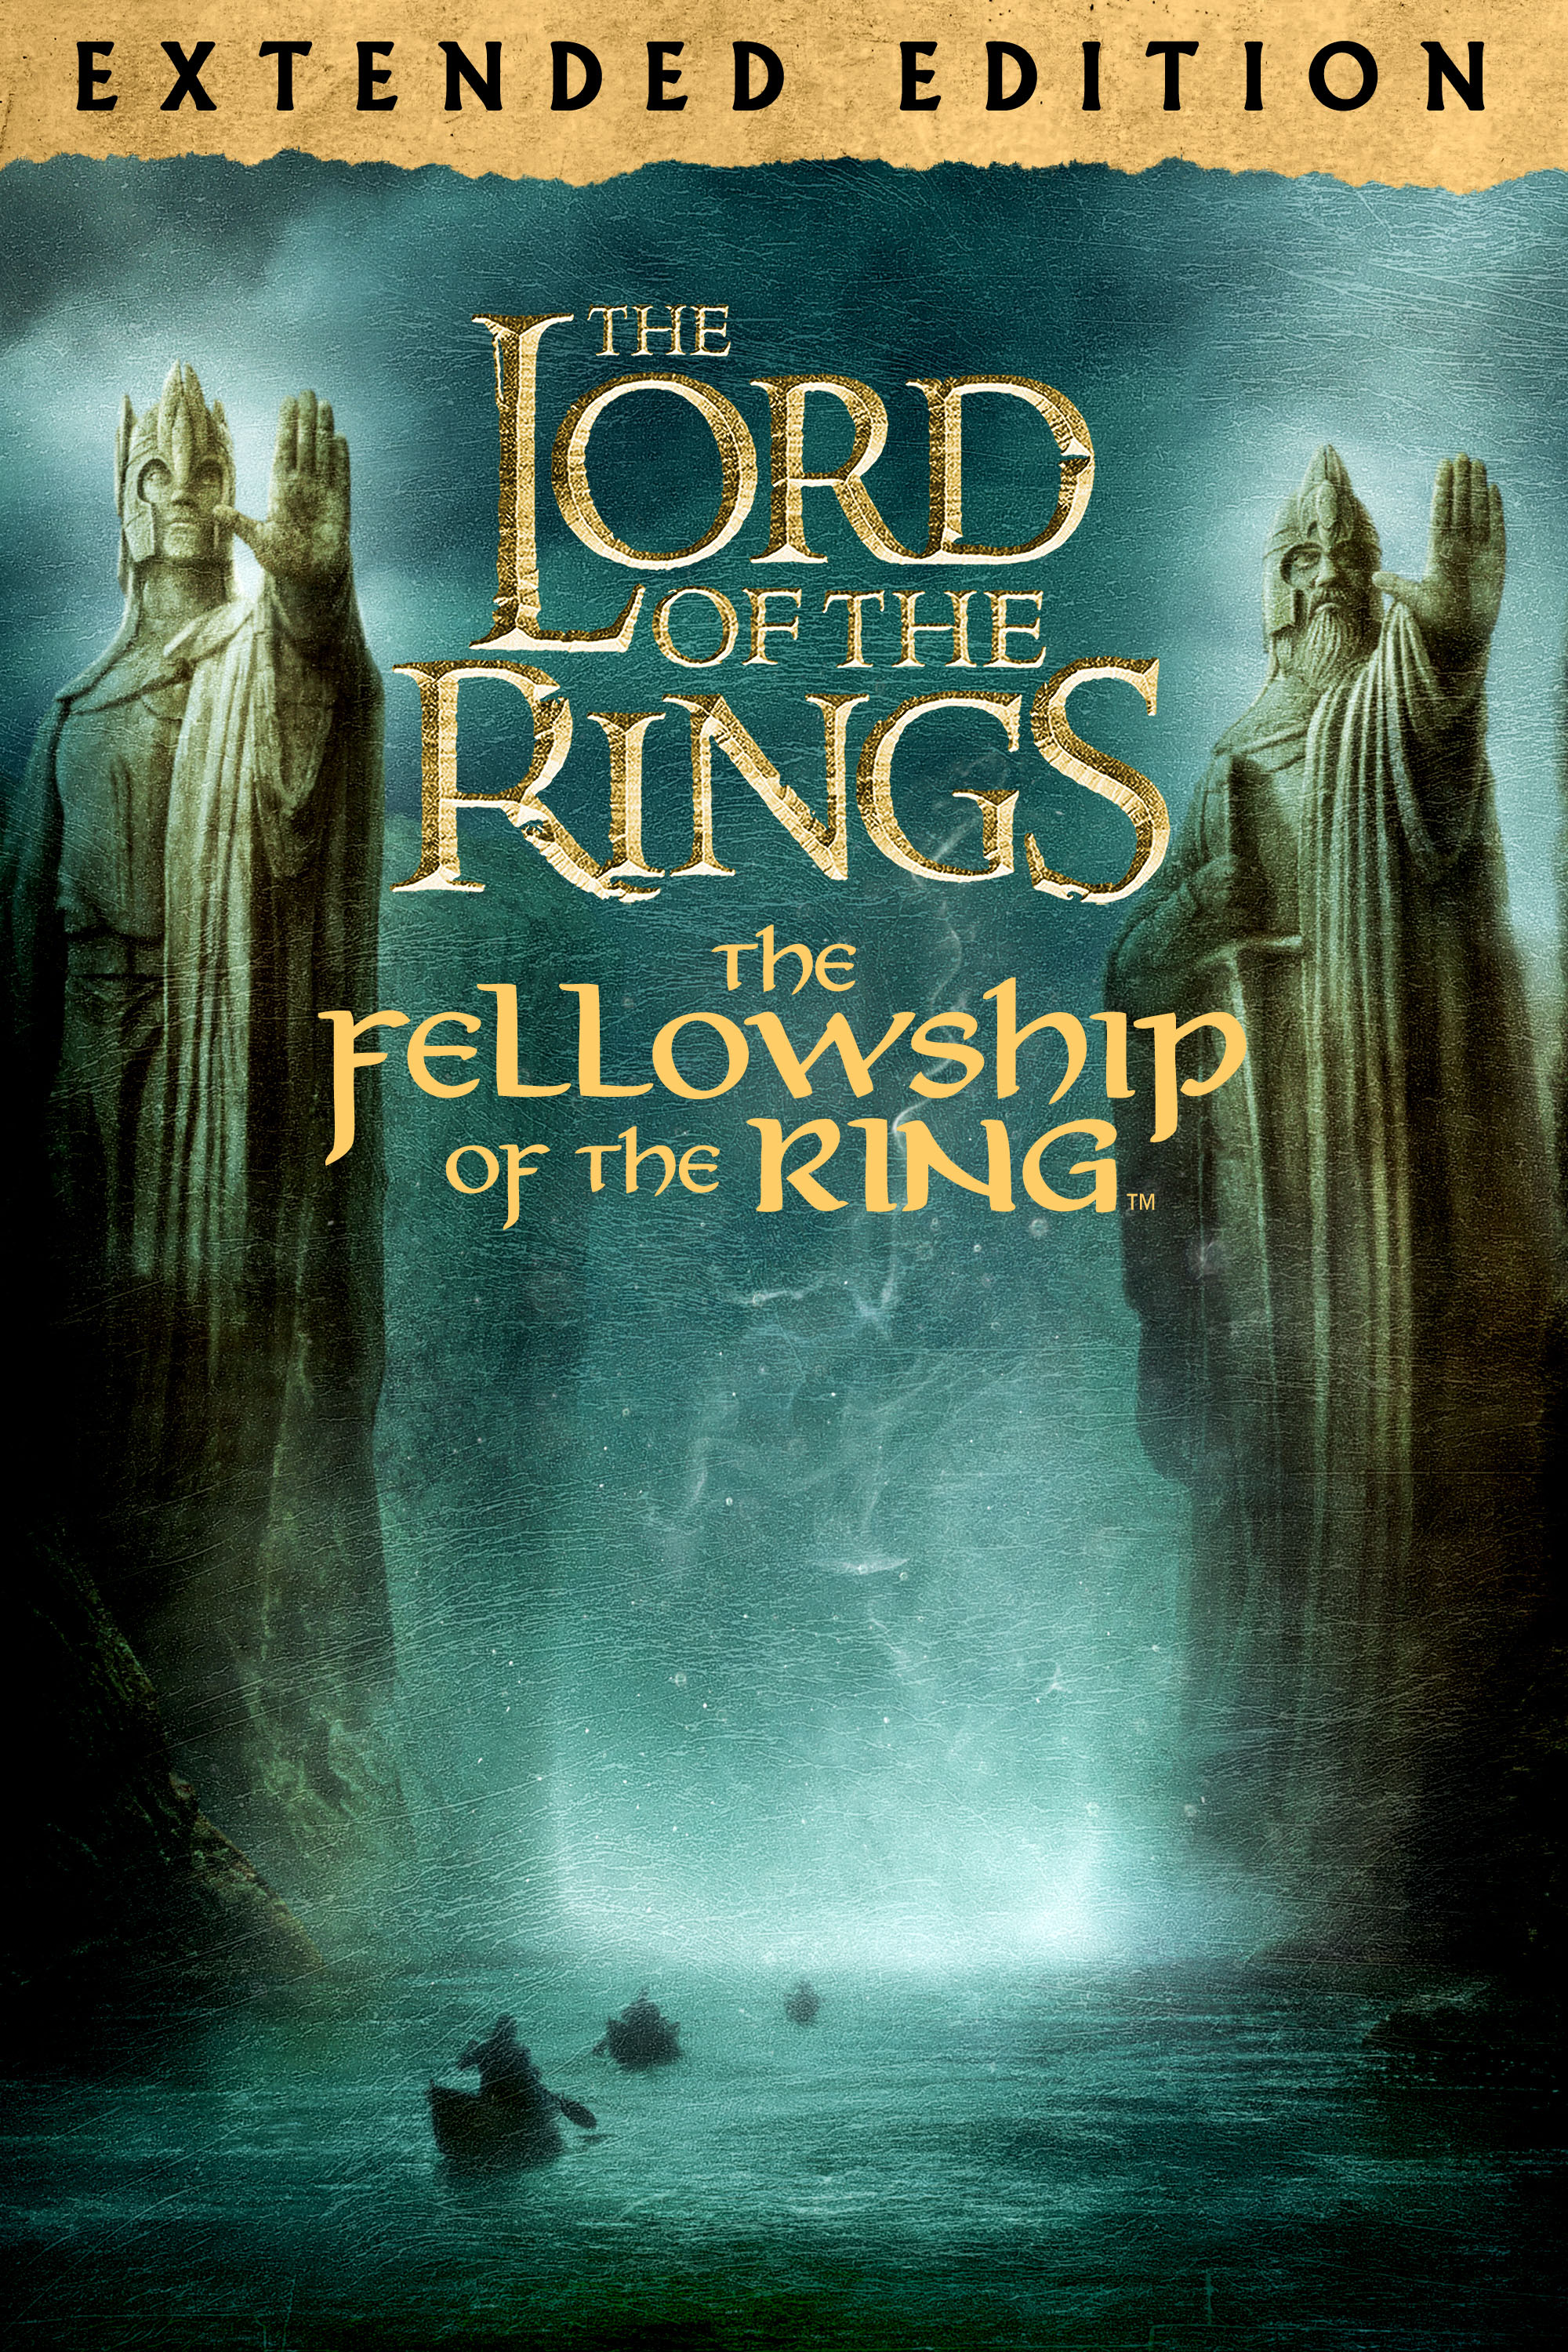 Lord of the Rings: The Fellowship of the Ring (Extended Edition)